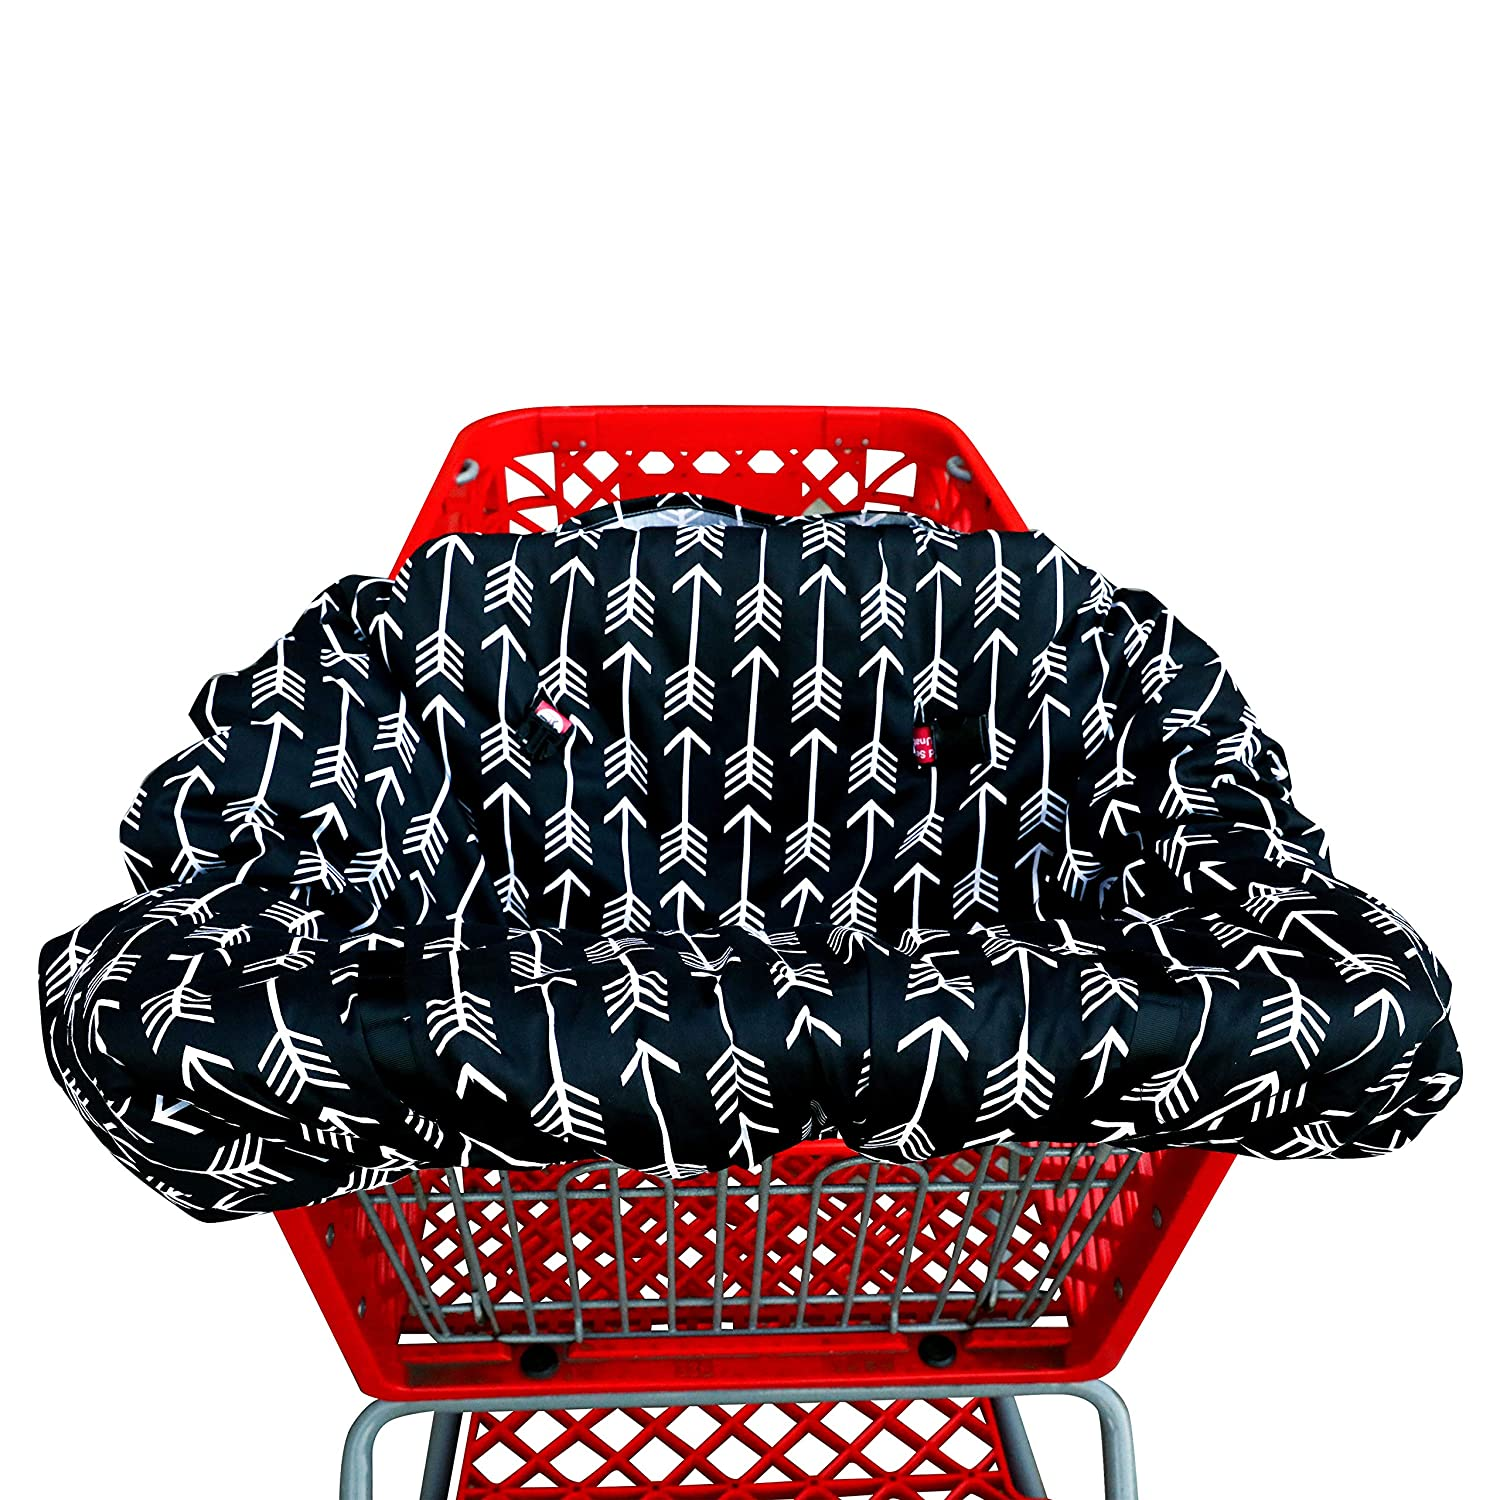 Shopping cart Covers for Baby   High Chair and Grocery Cover for Babies   Infants  Toddlers Trolley Seat for Boys and Girls (Black White Arrow)